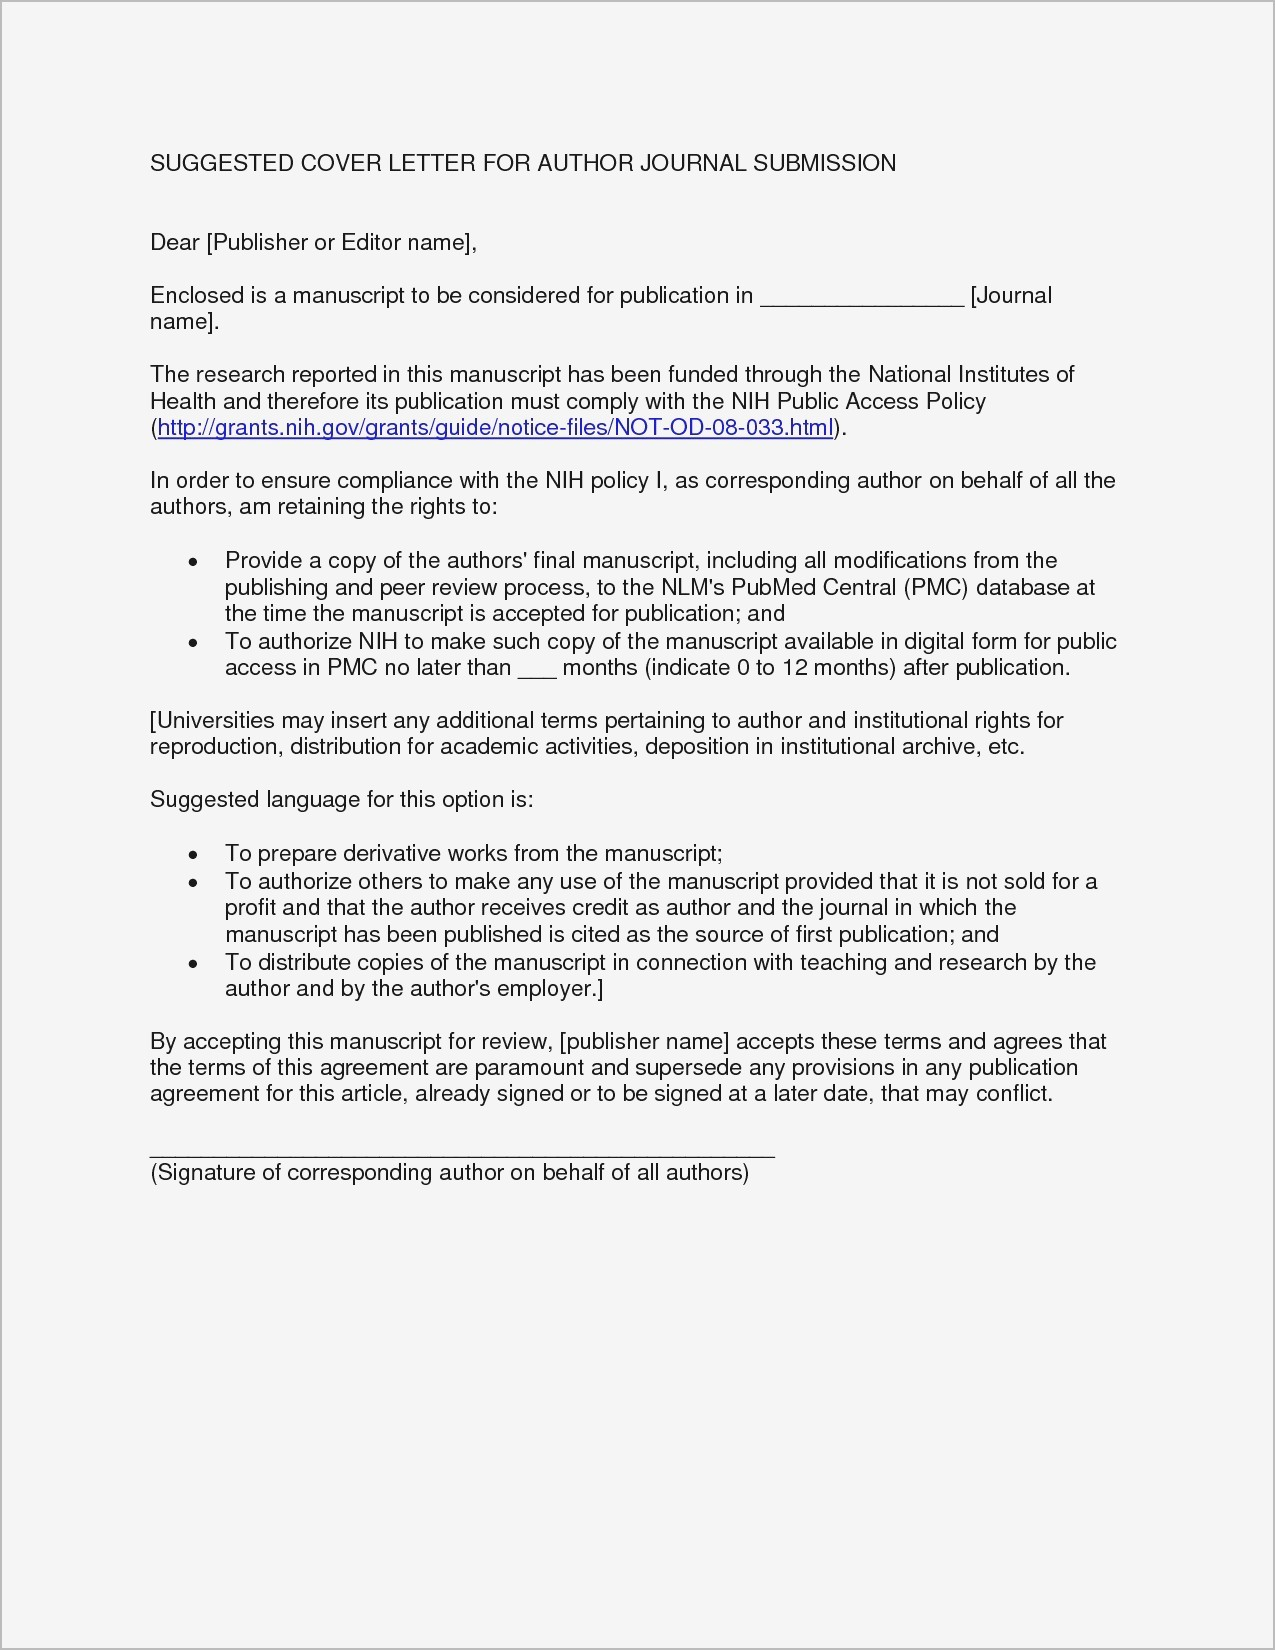 Fax Cover Letter In Pdf | Cover Letter Template Pdf Collection Letter Template Collection